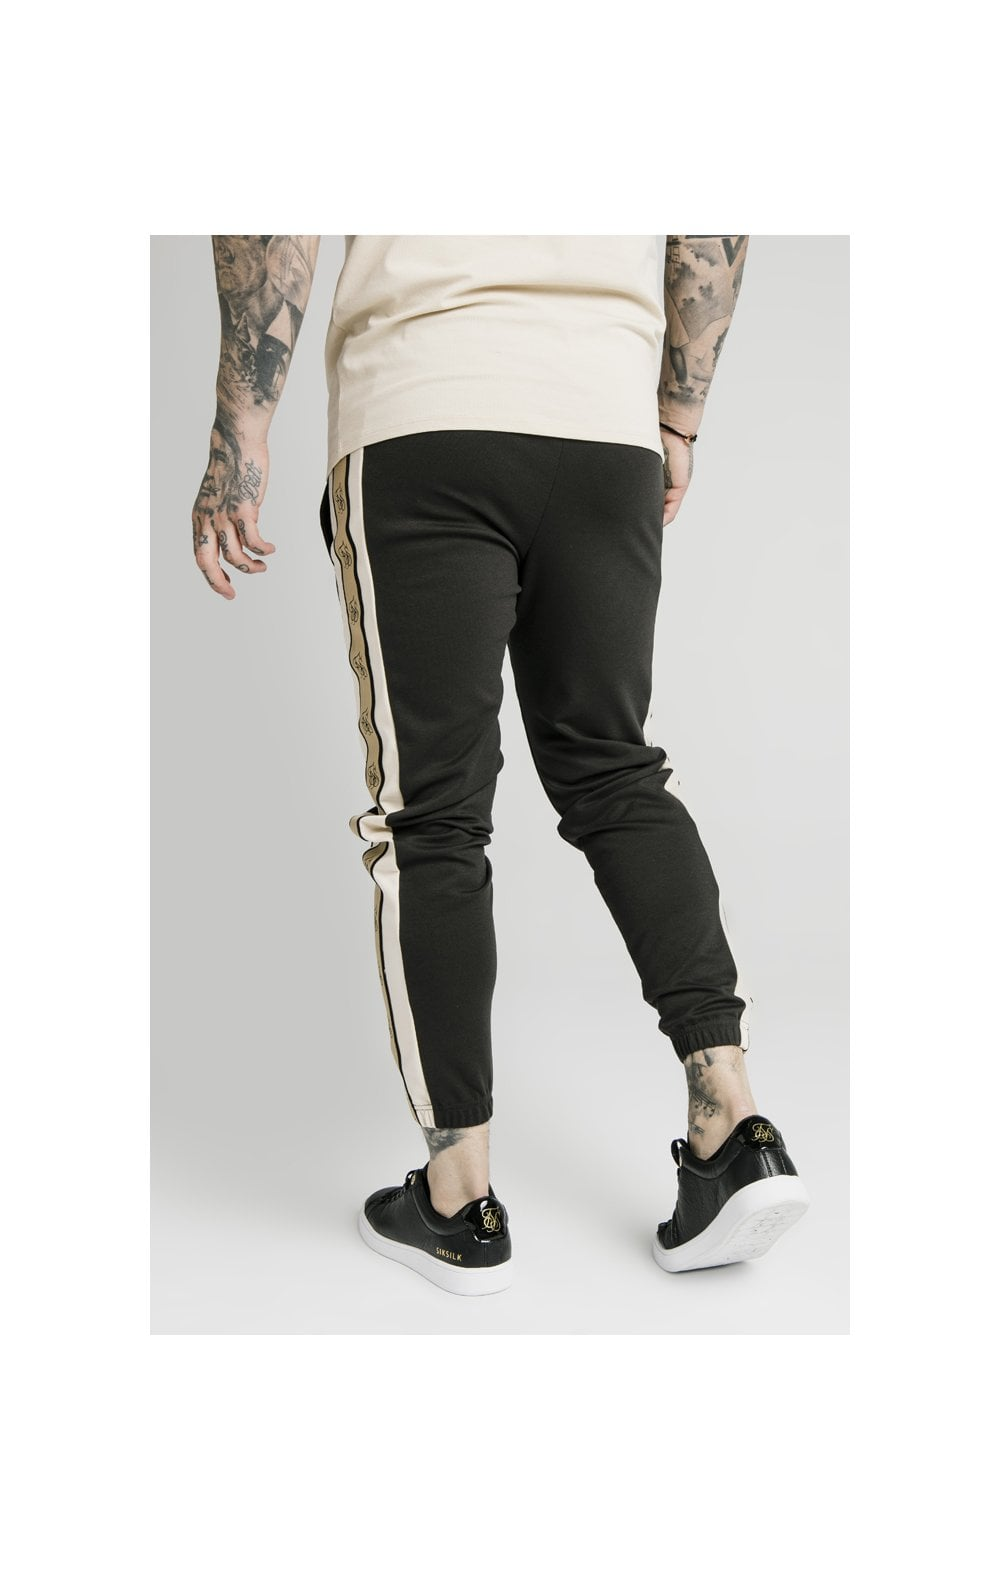 Load image into Gallery viewer, SikSilk Premium Tape Track Pant - Anthracite (5)